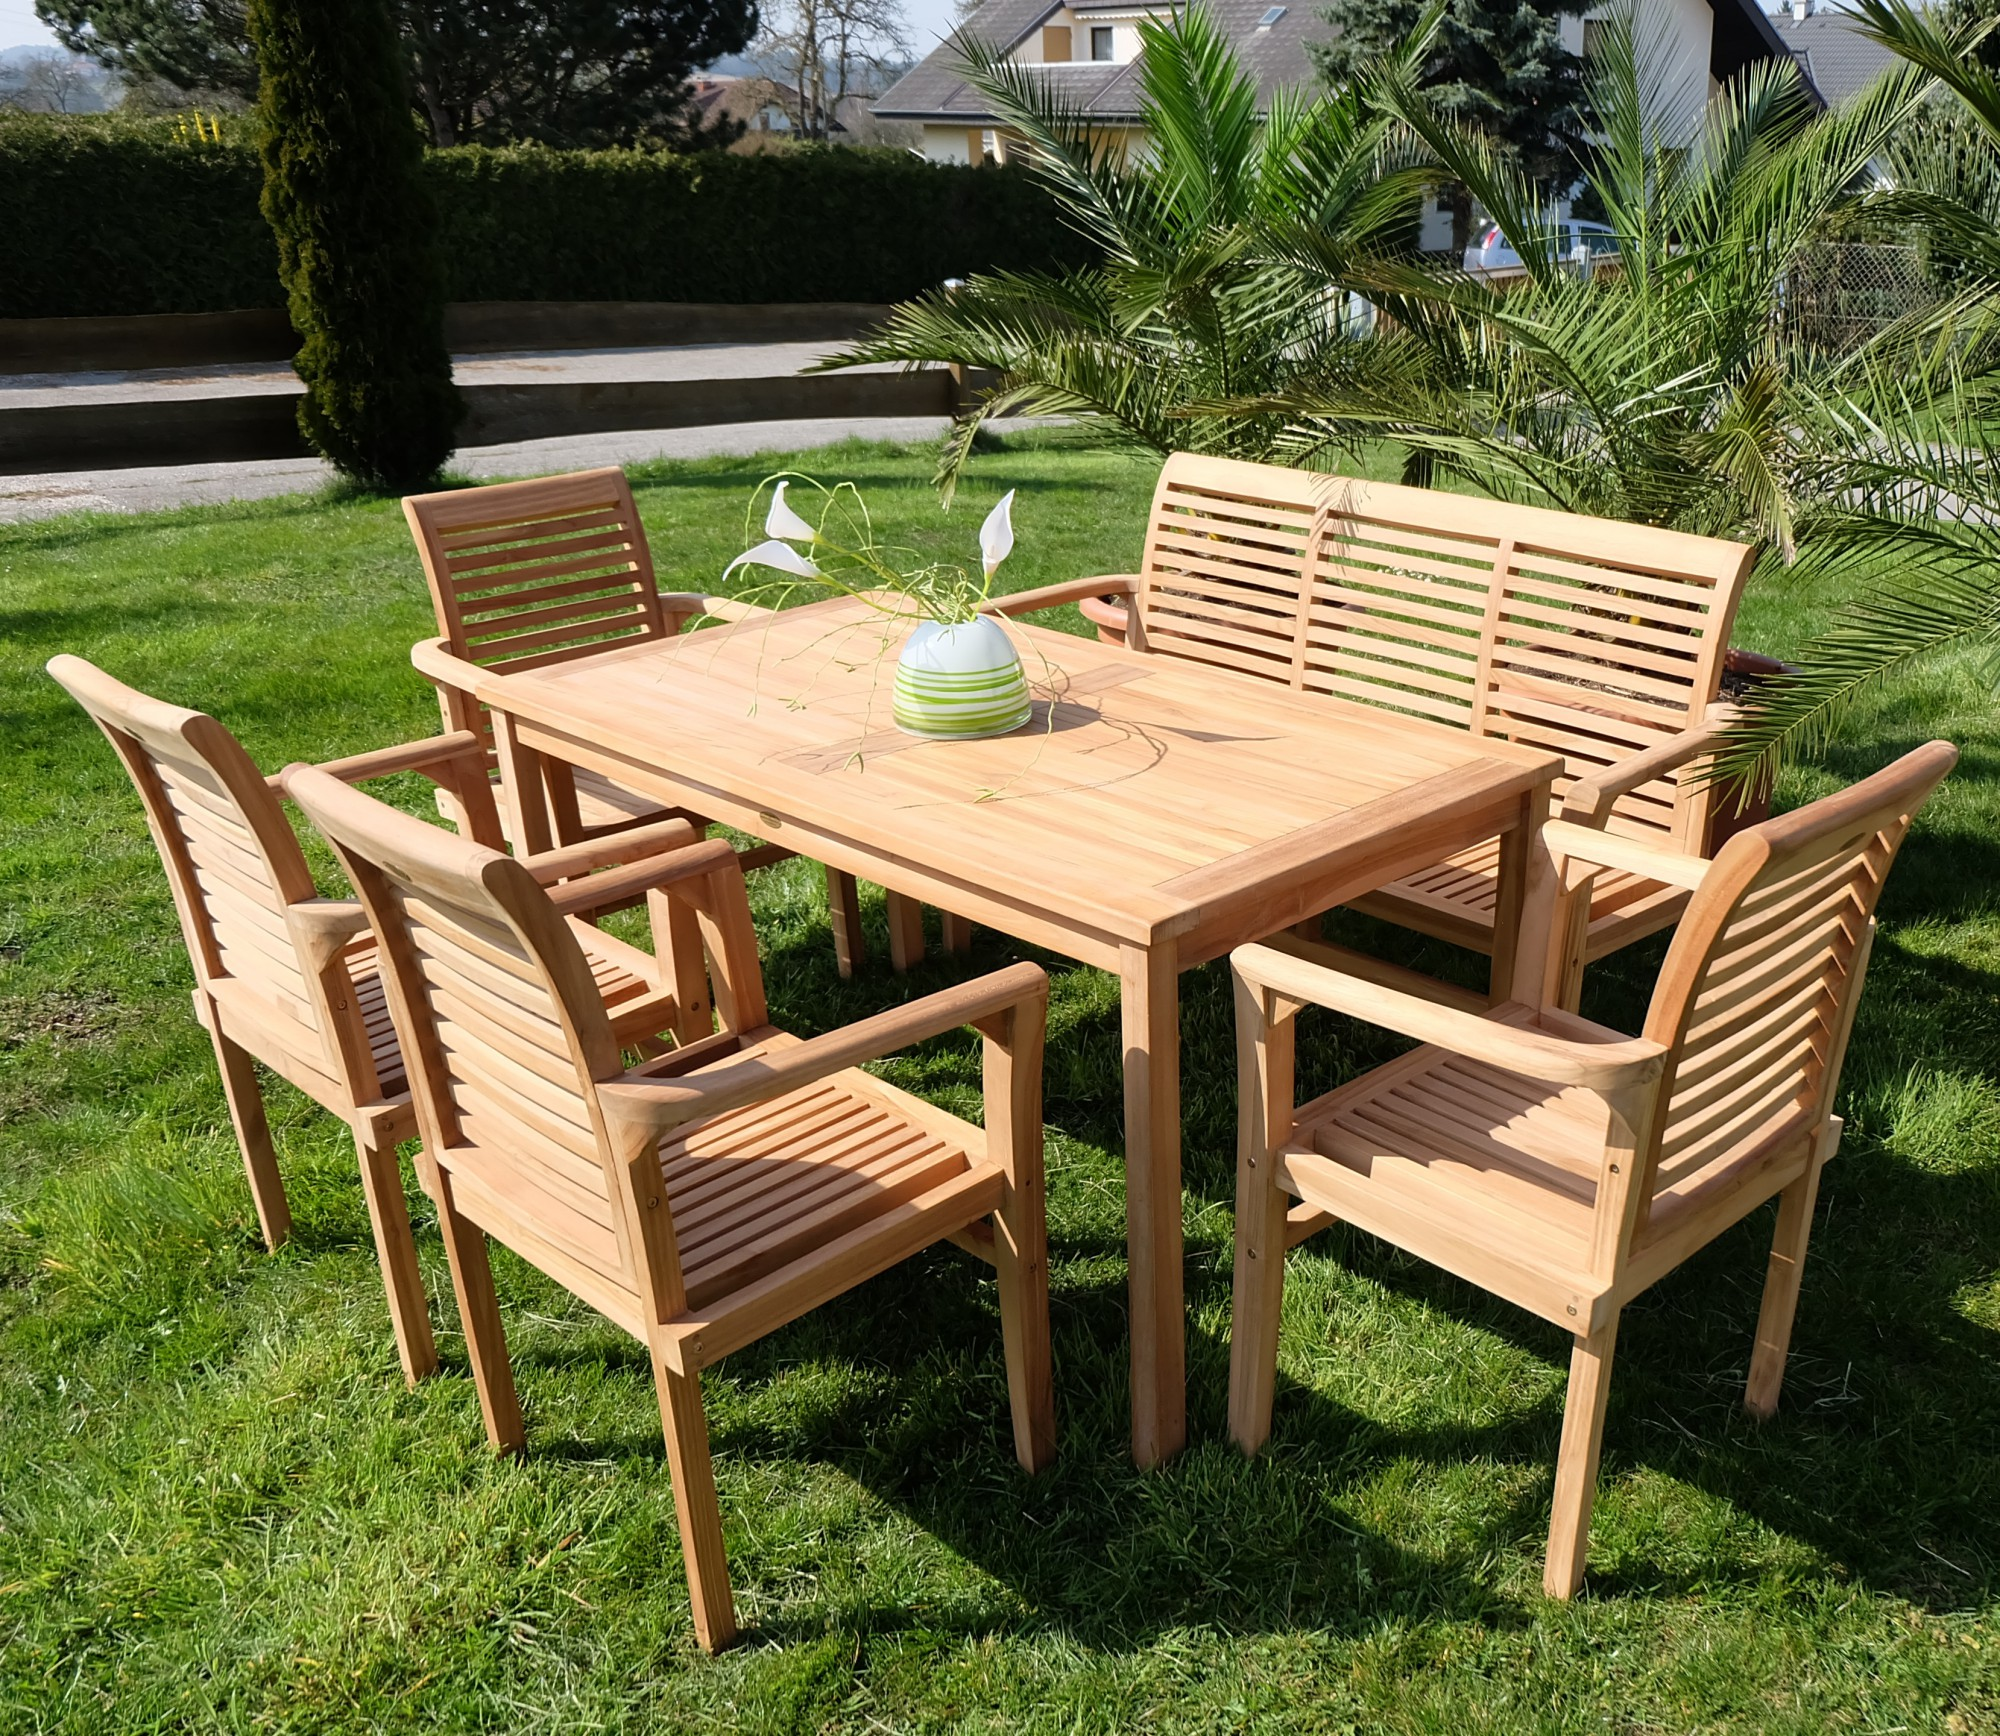 Teak Gartenmöbel Set. 7 pc teak dining set garden outdoor patio ...